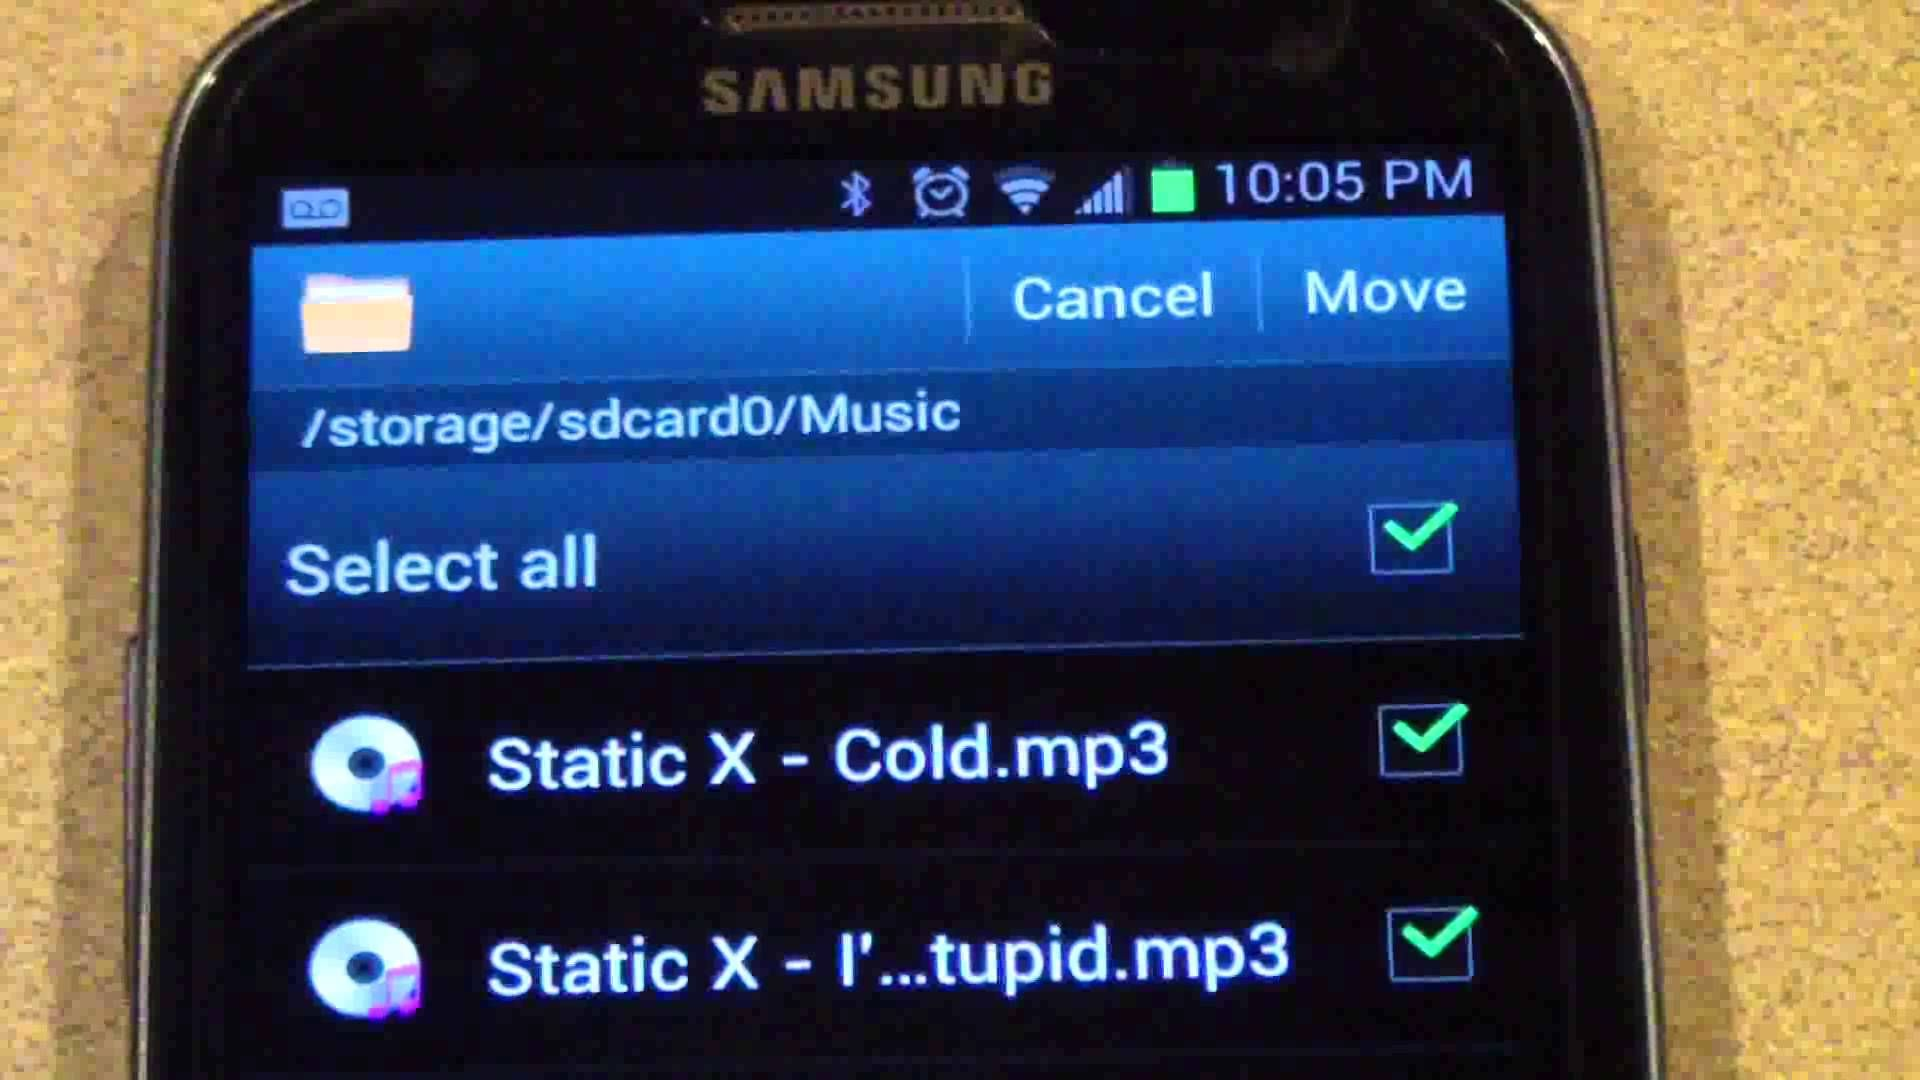 Galaxy Transfer Apps From Internal Storage to Micro SD Card Without Installing an App Memory Cards 4 You